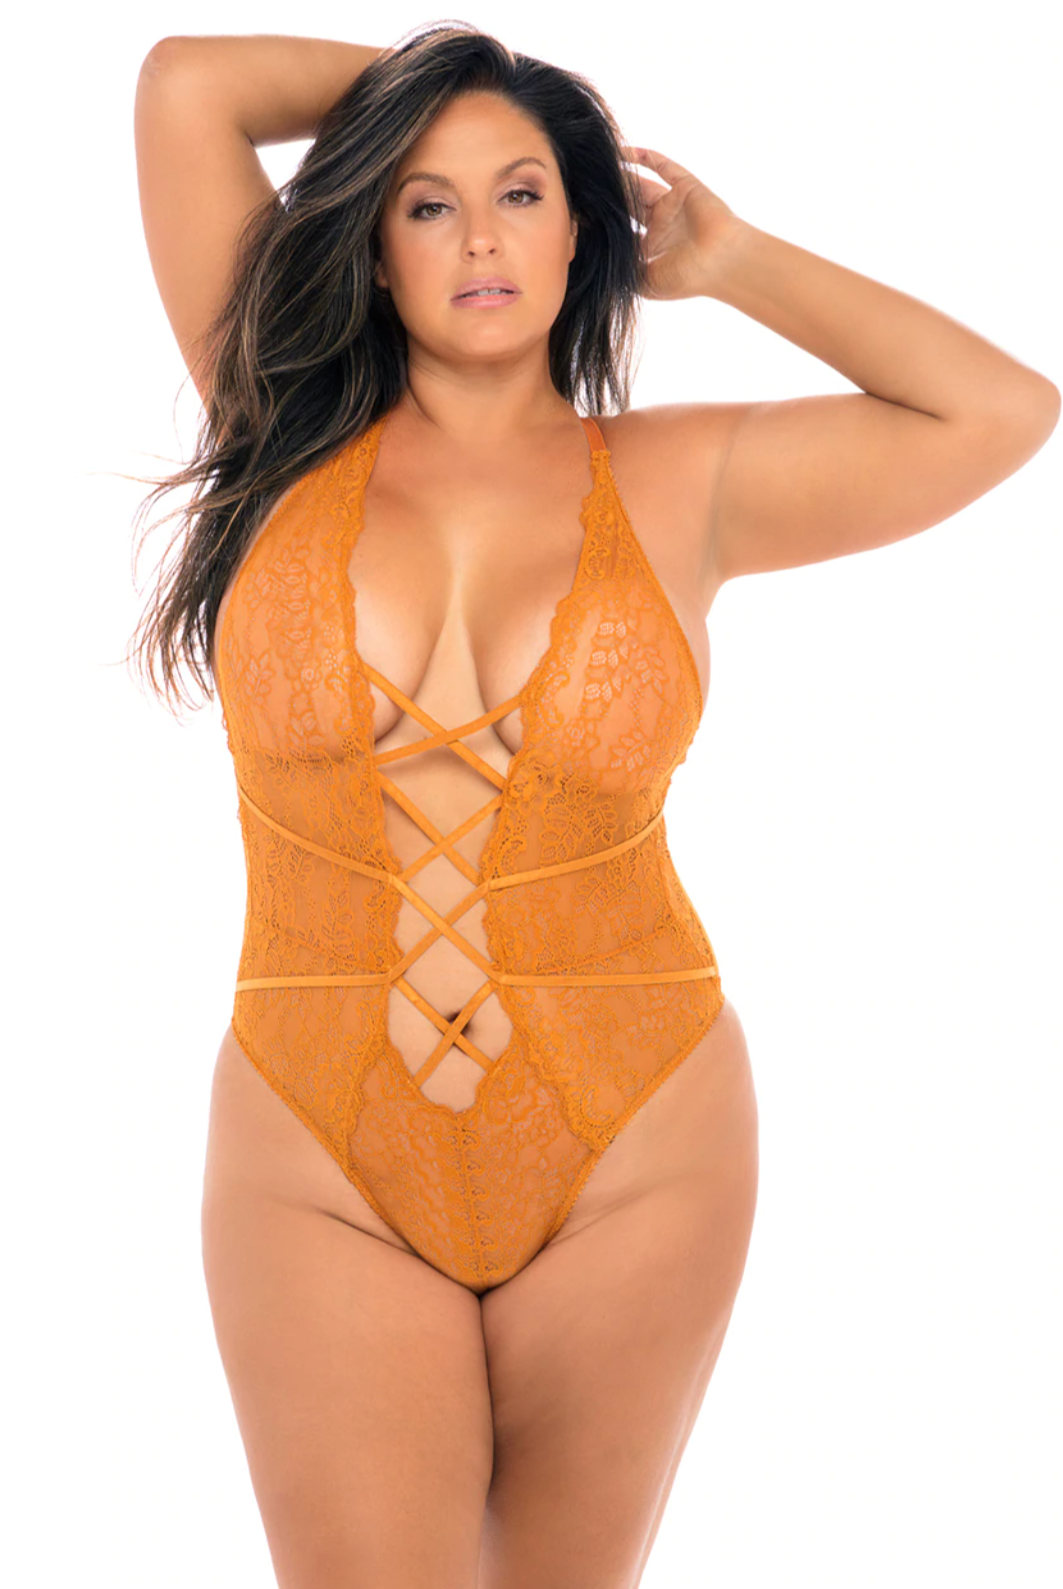 Sammy Strap up and Lace Teddy - Made For Curves